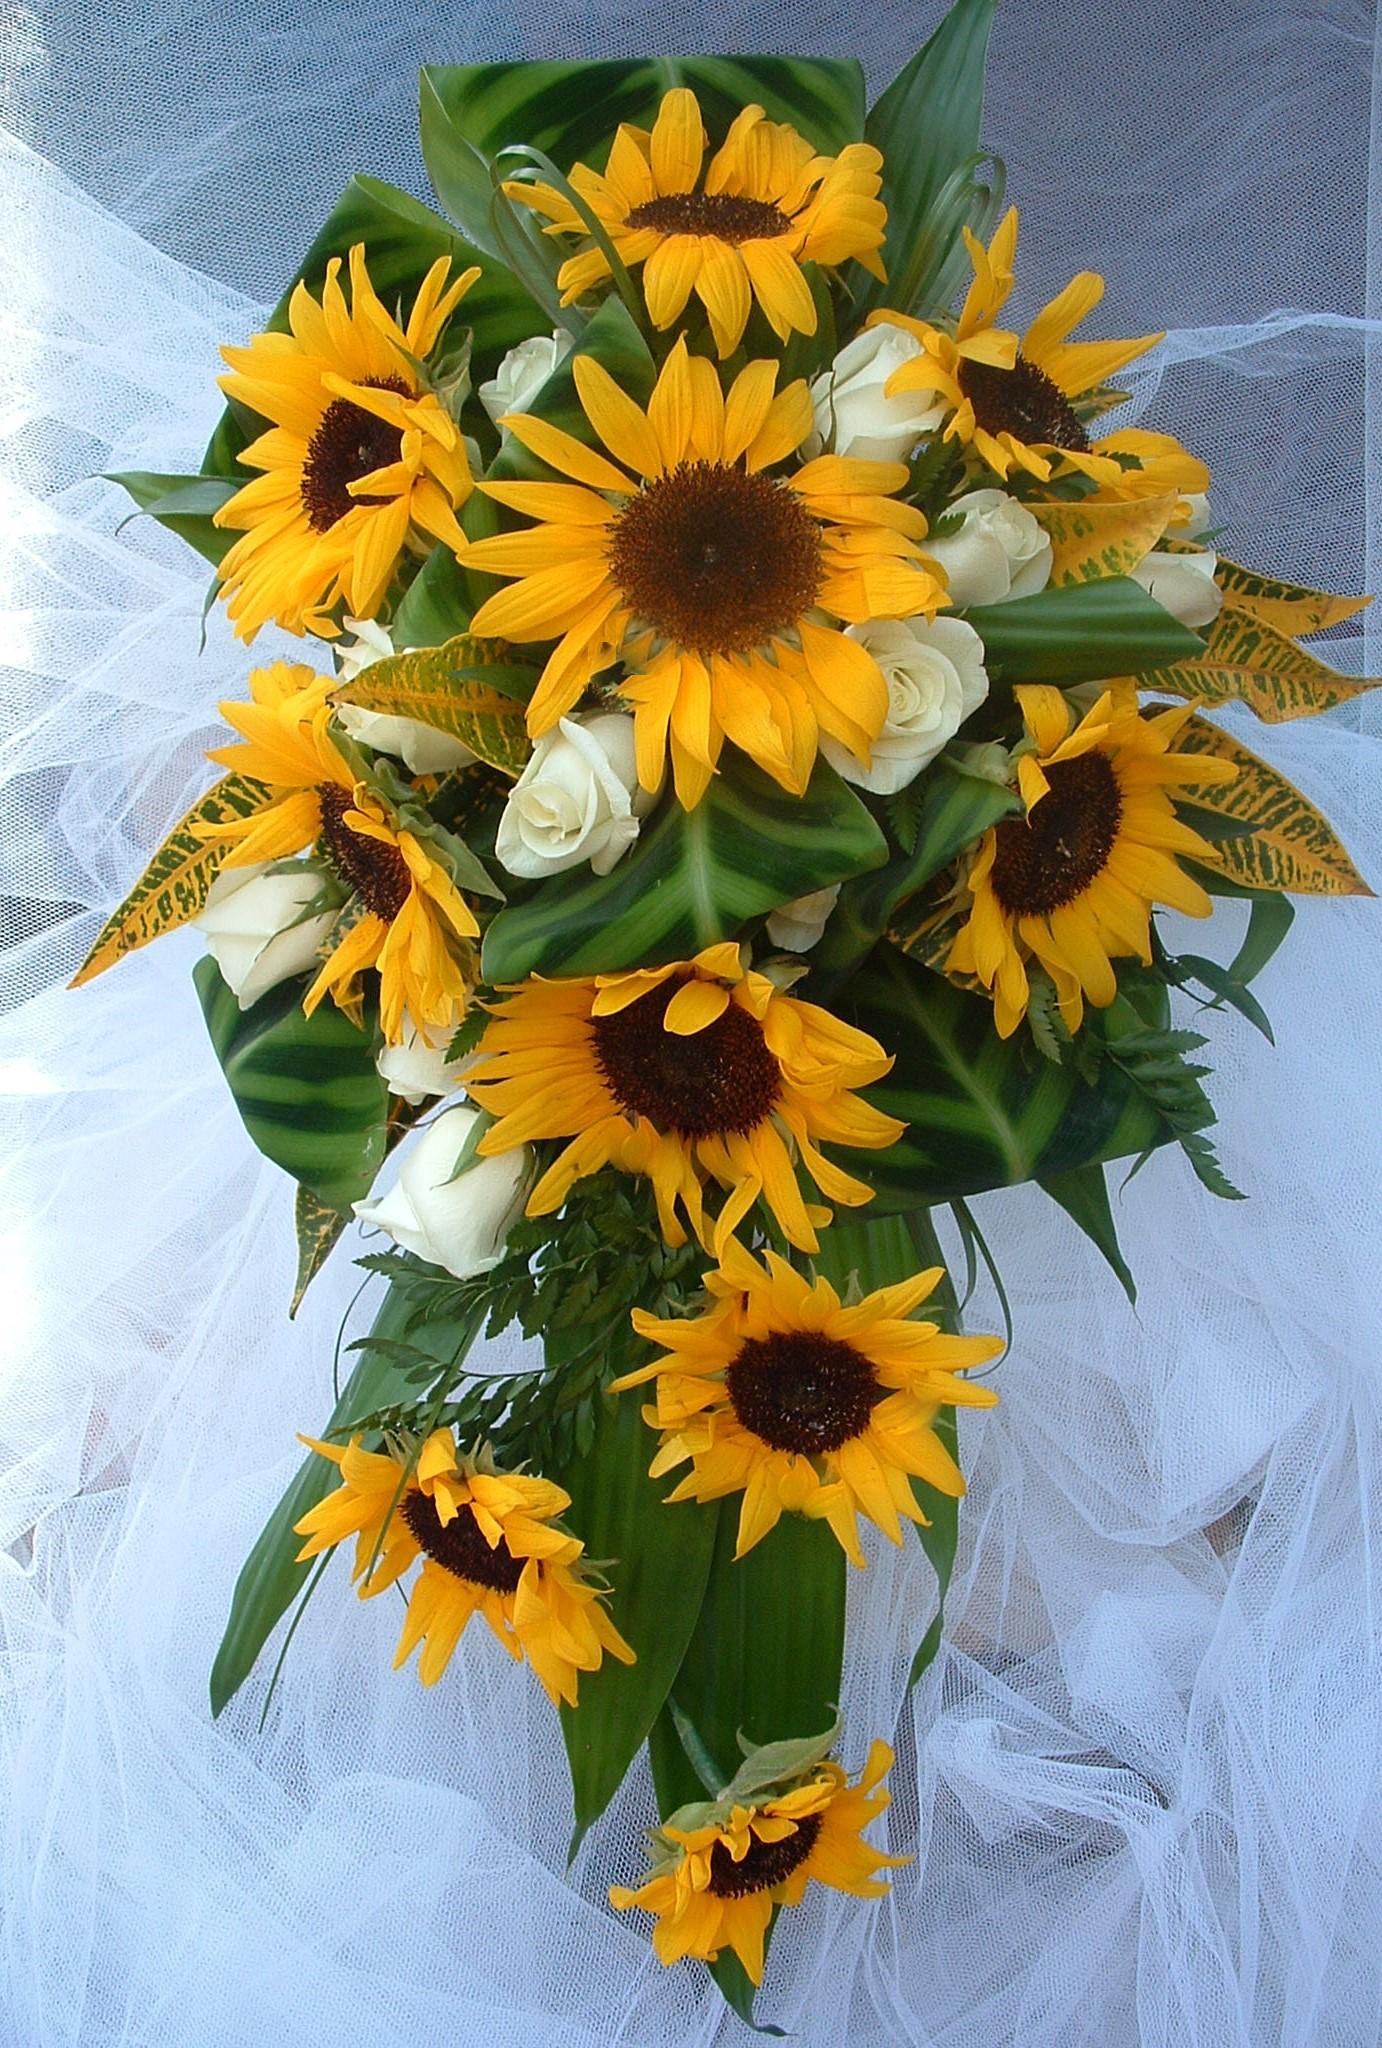 sunflowers & roses shower bouquet something different